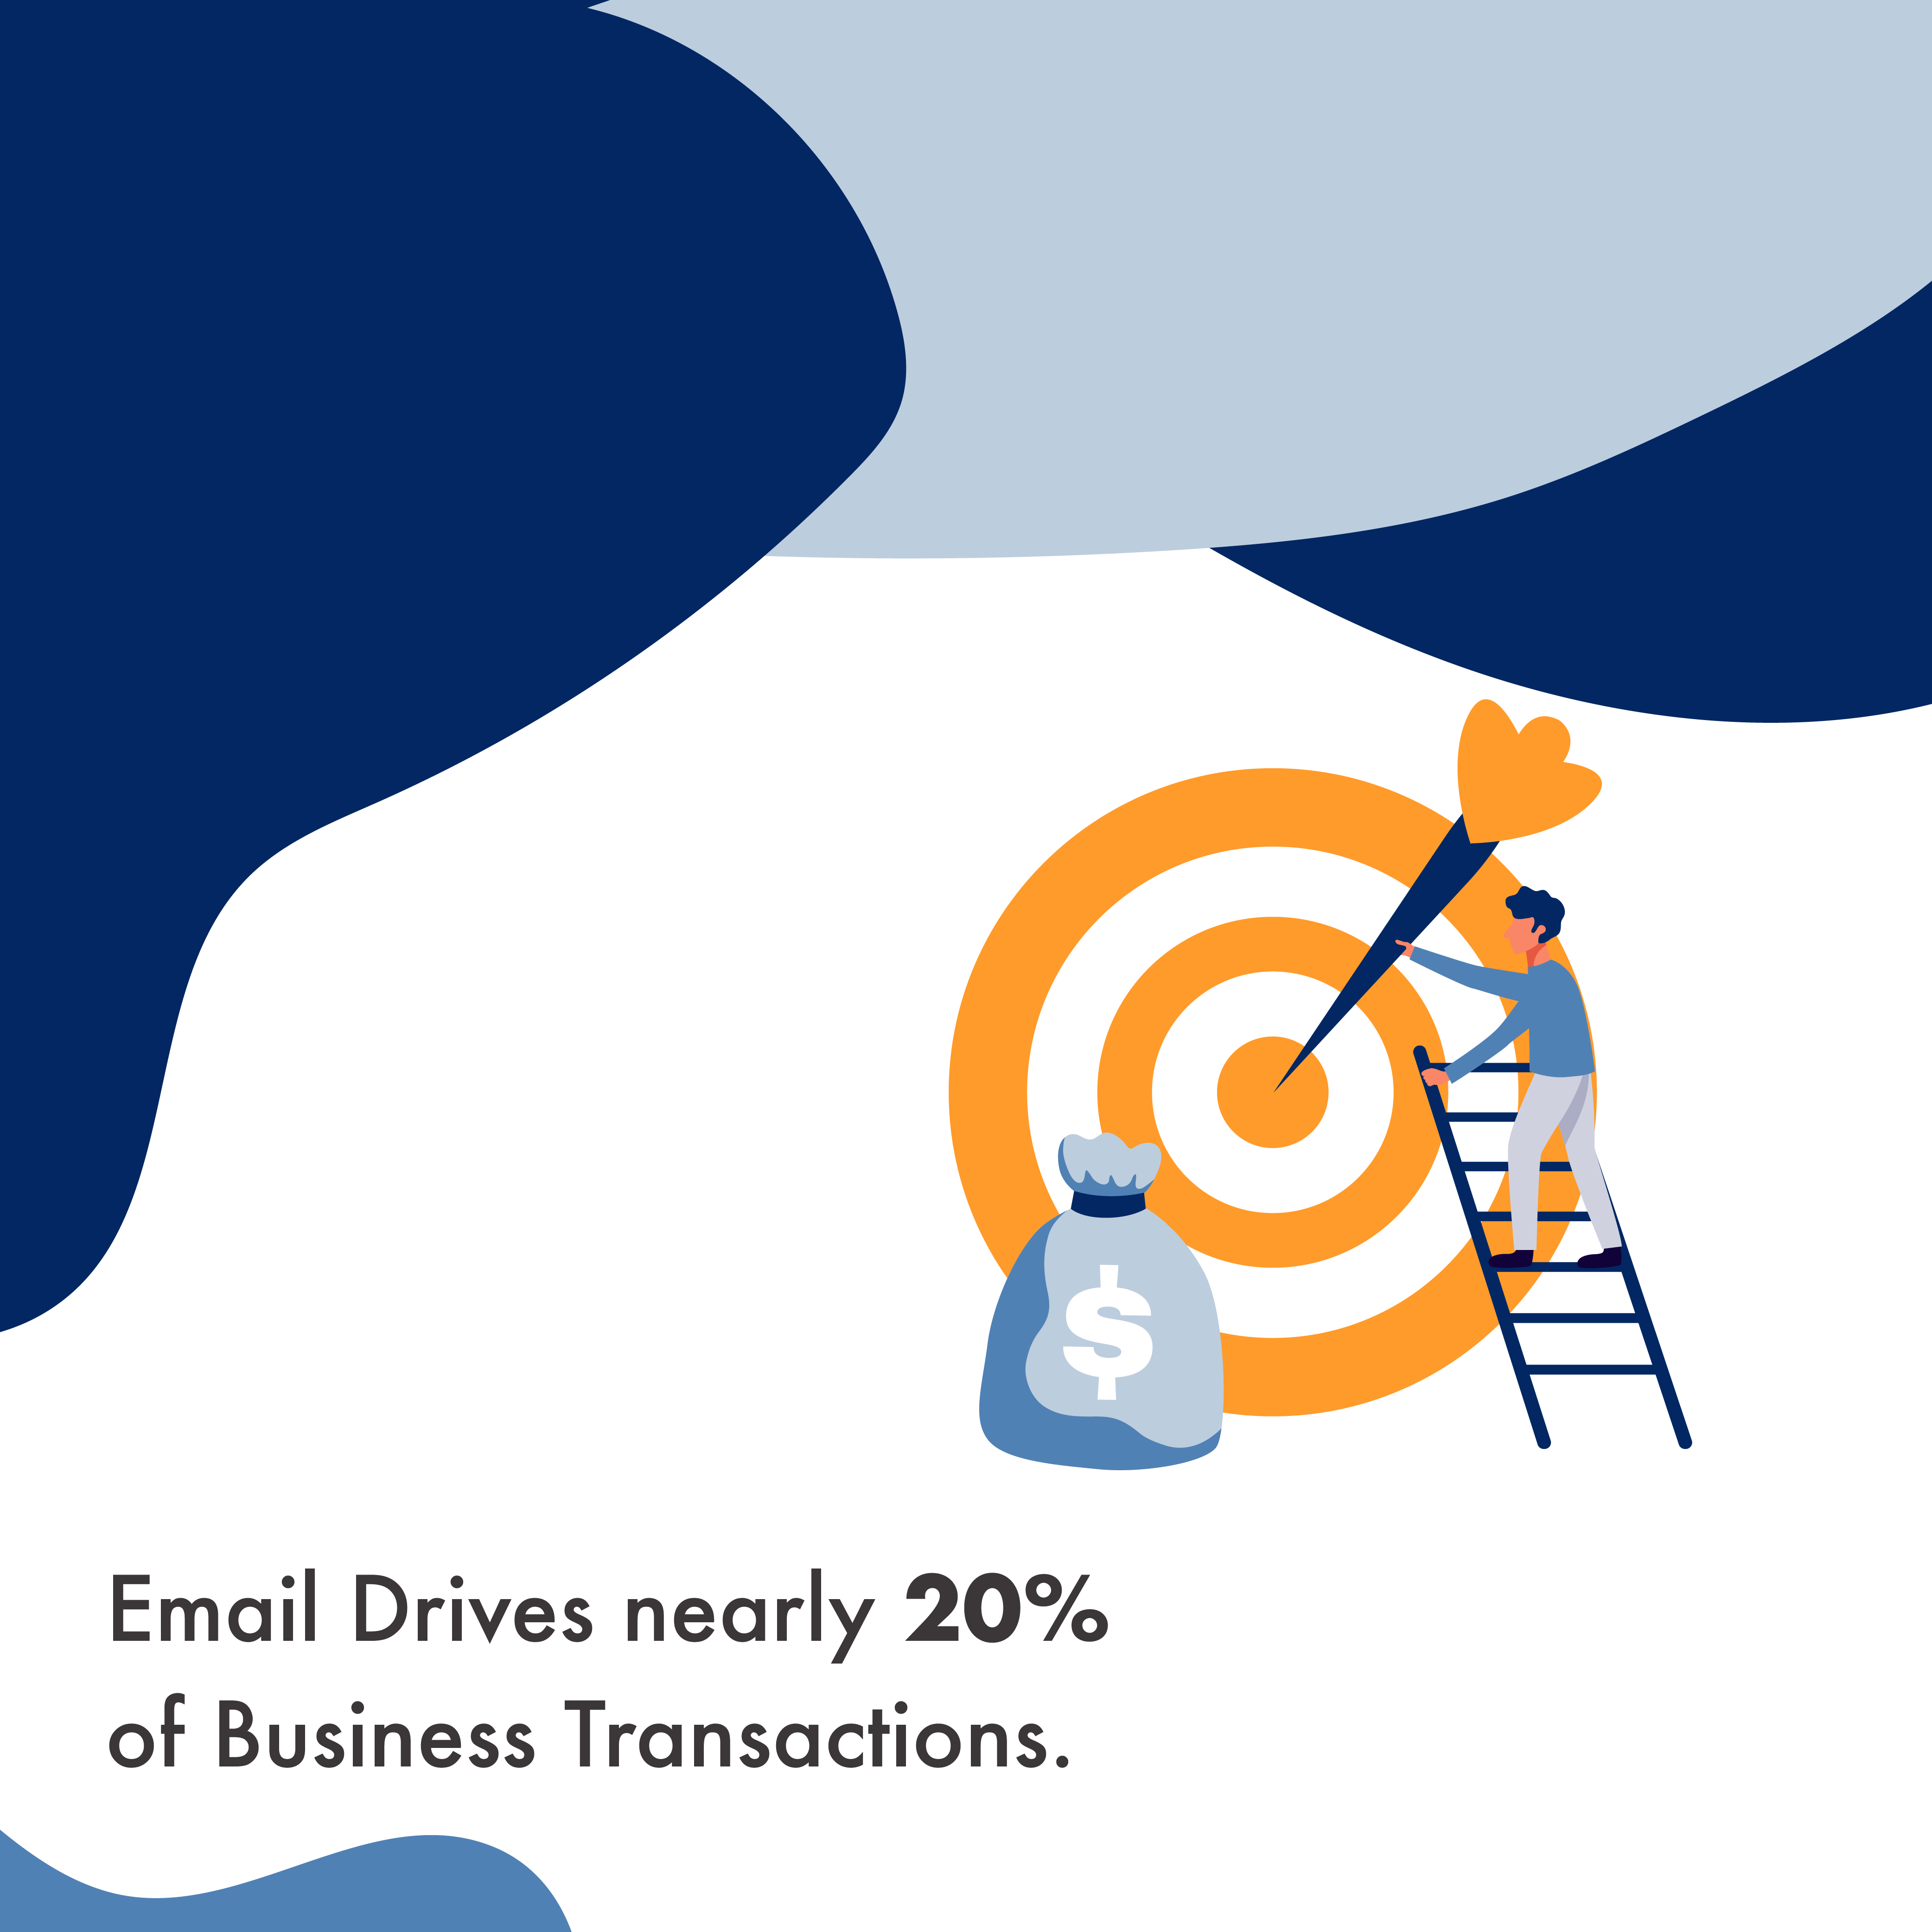 Email Drives nearly 20% of business transactions